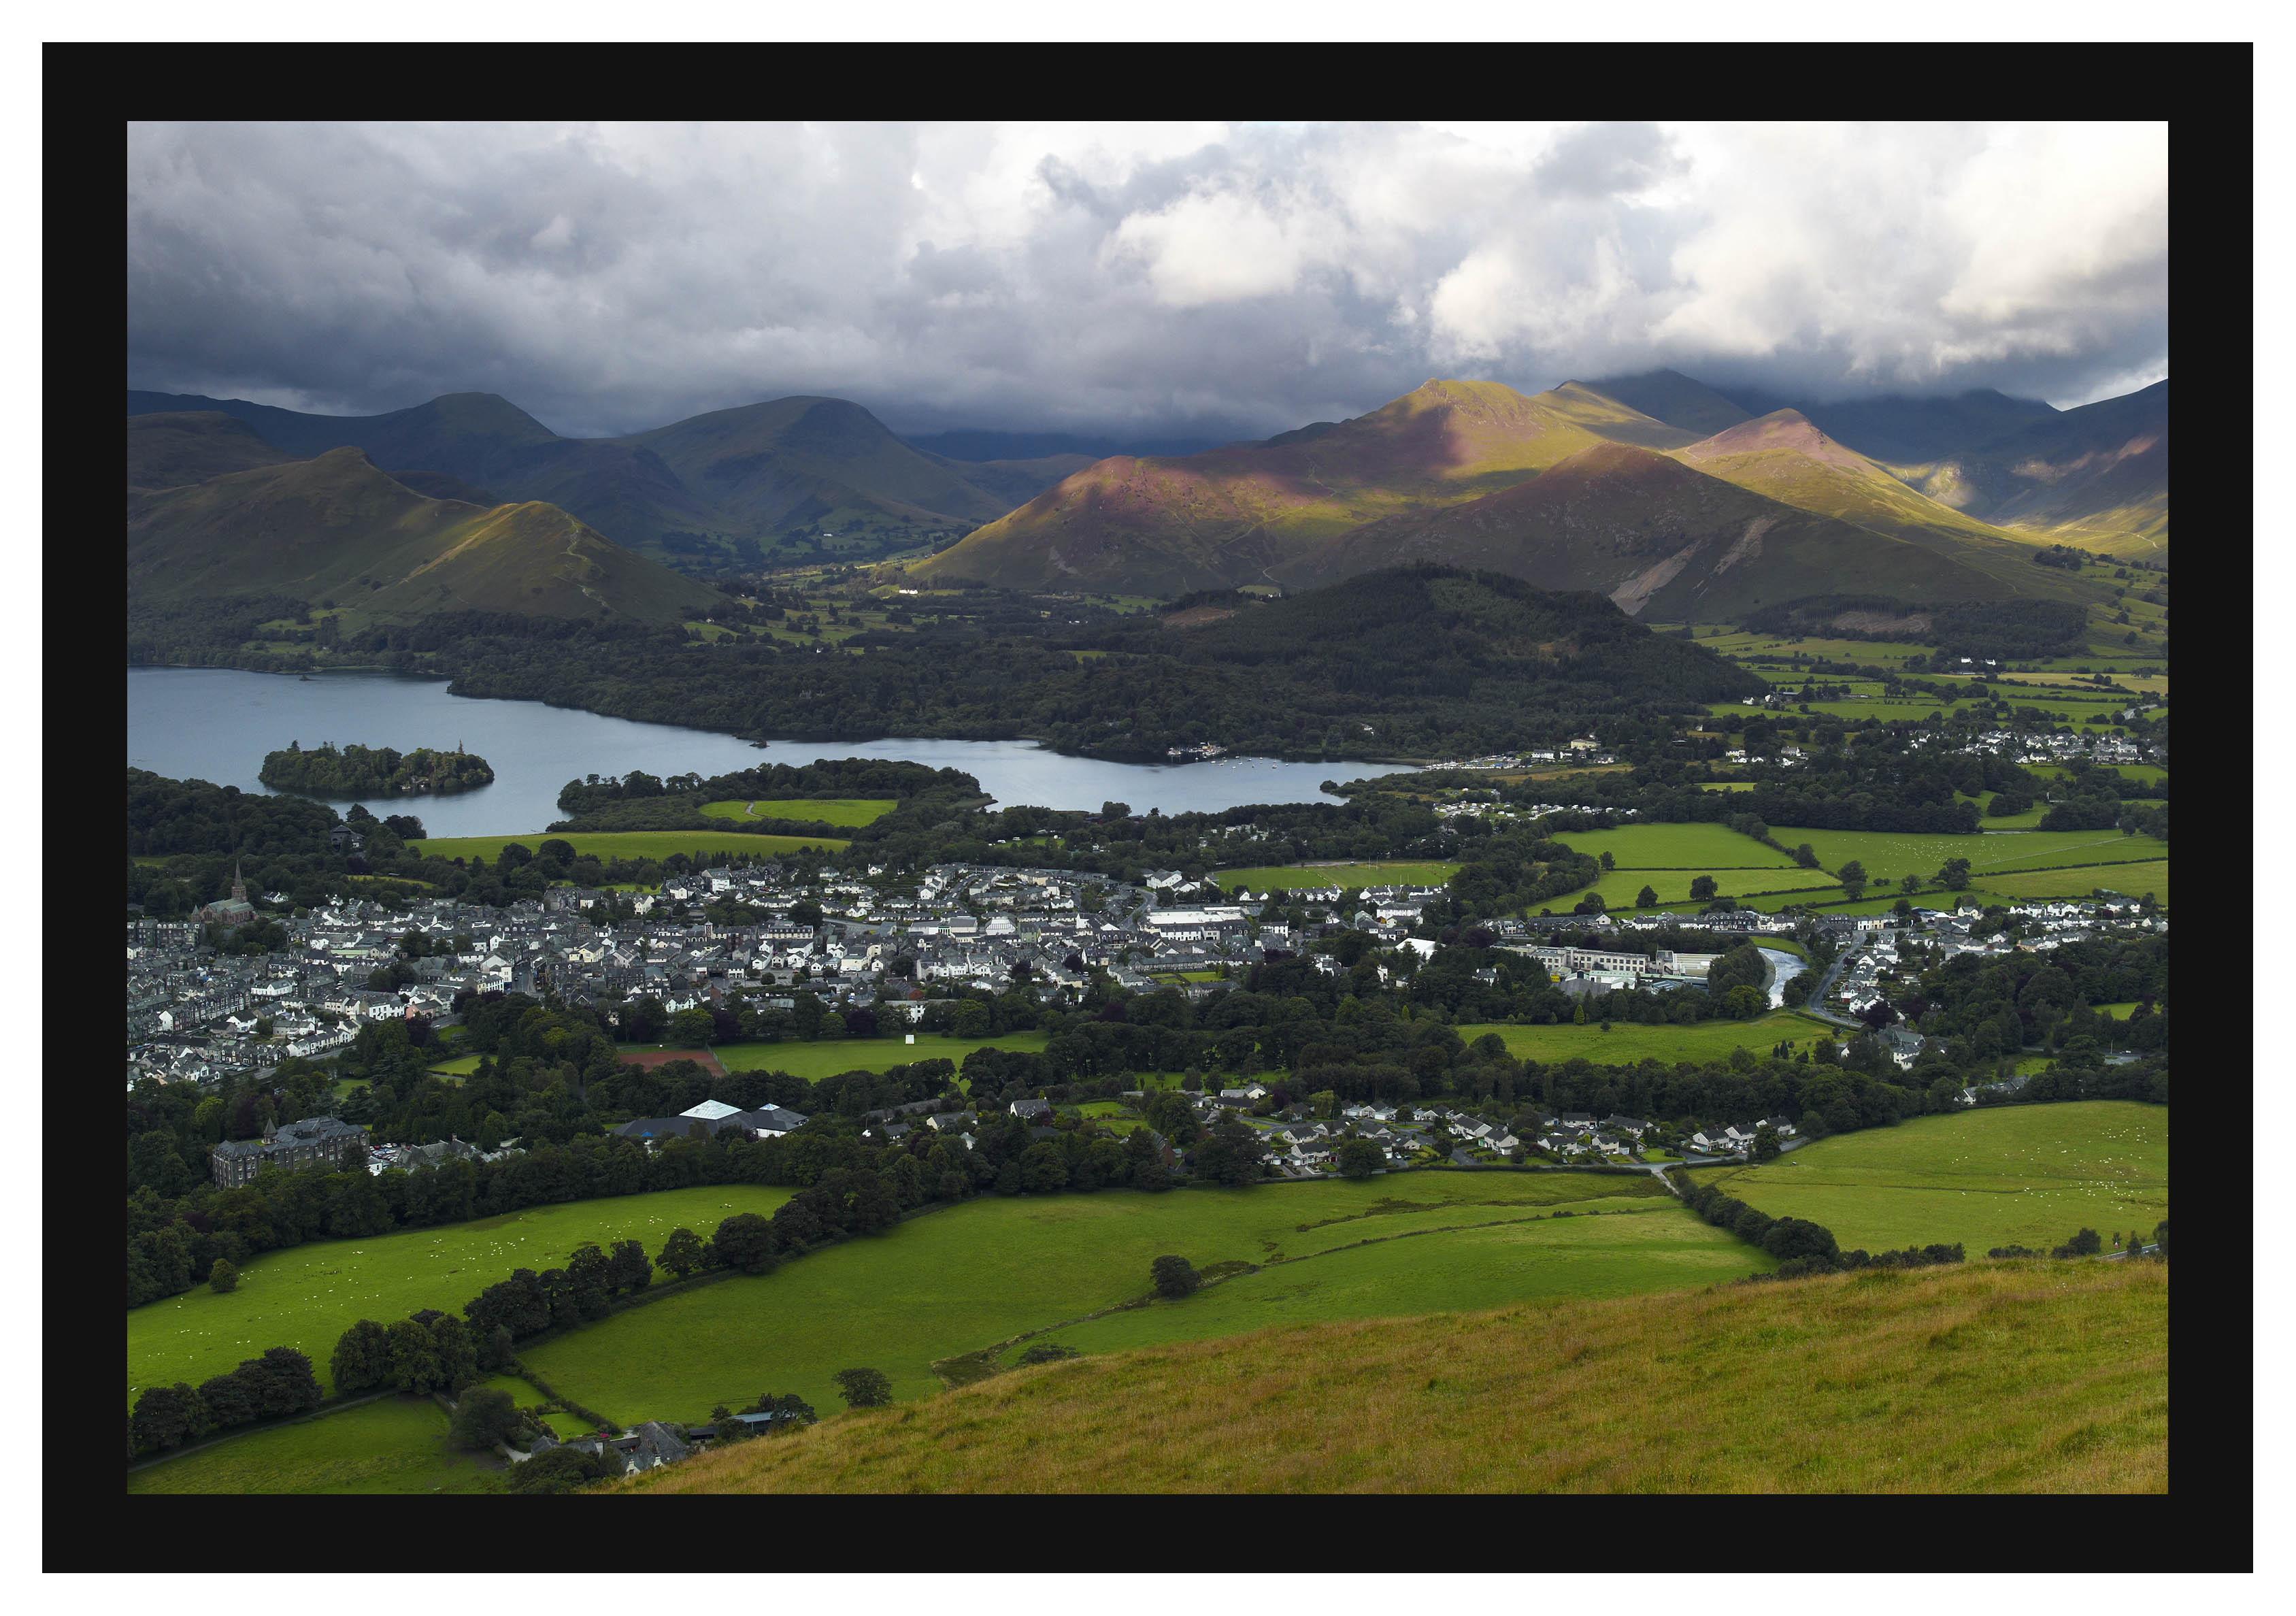 L1001288 Derwent Water and the Newlands Valley and Coledale fells over Keswick from Latrigg